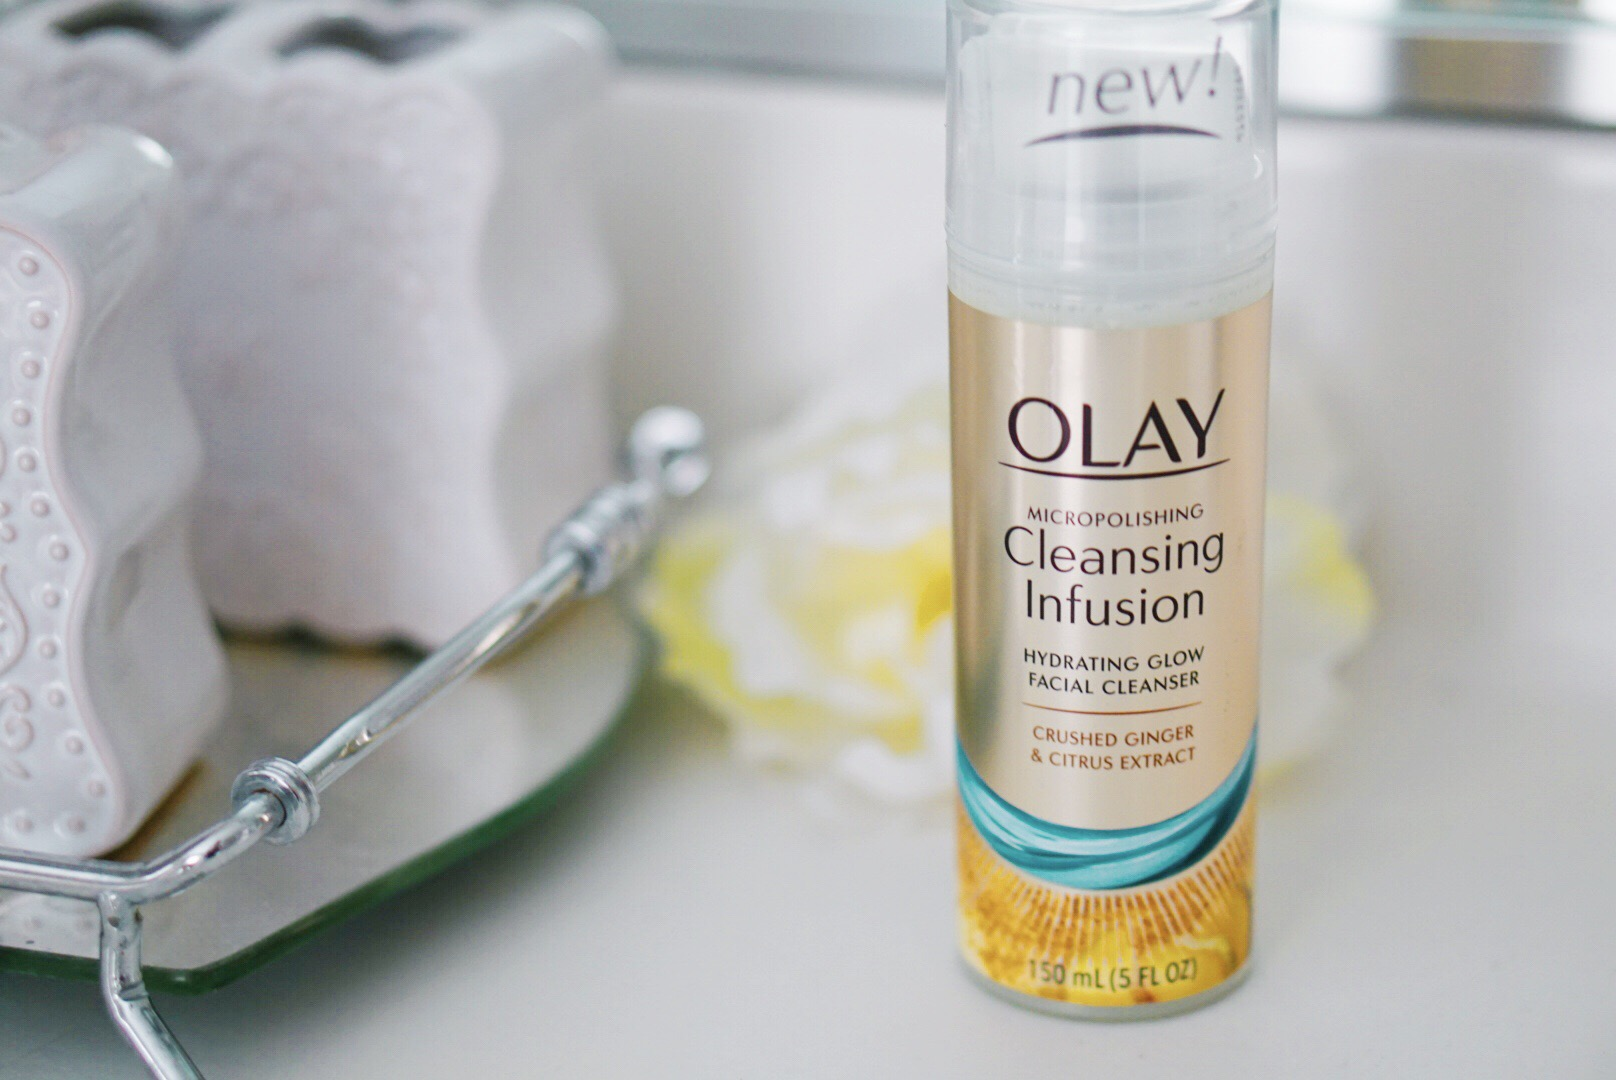 Olay Skincare - Olay Cleansing Infusions Face Wash and Body Wash via Beauty Blogger Misty Nelson frostedBLOG @frostedevents lifestyle influencer